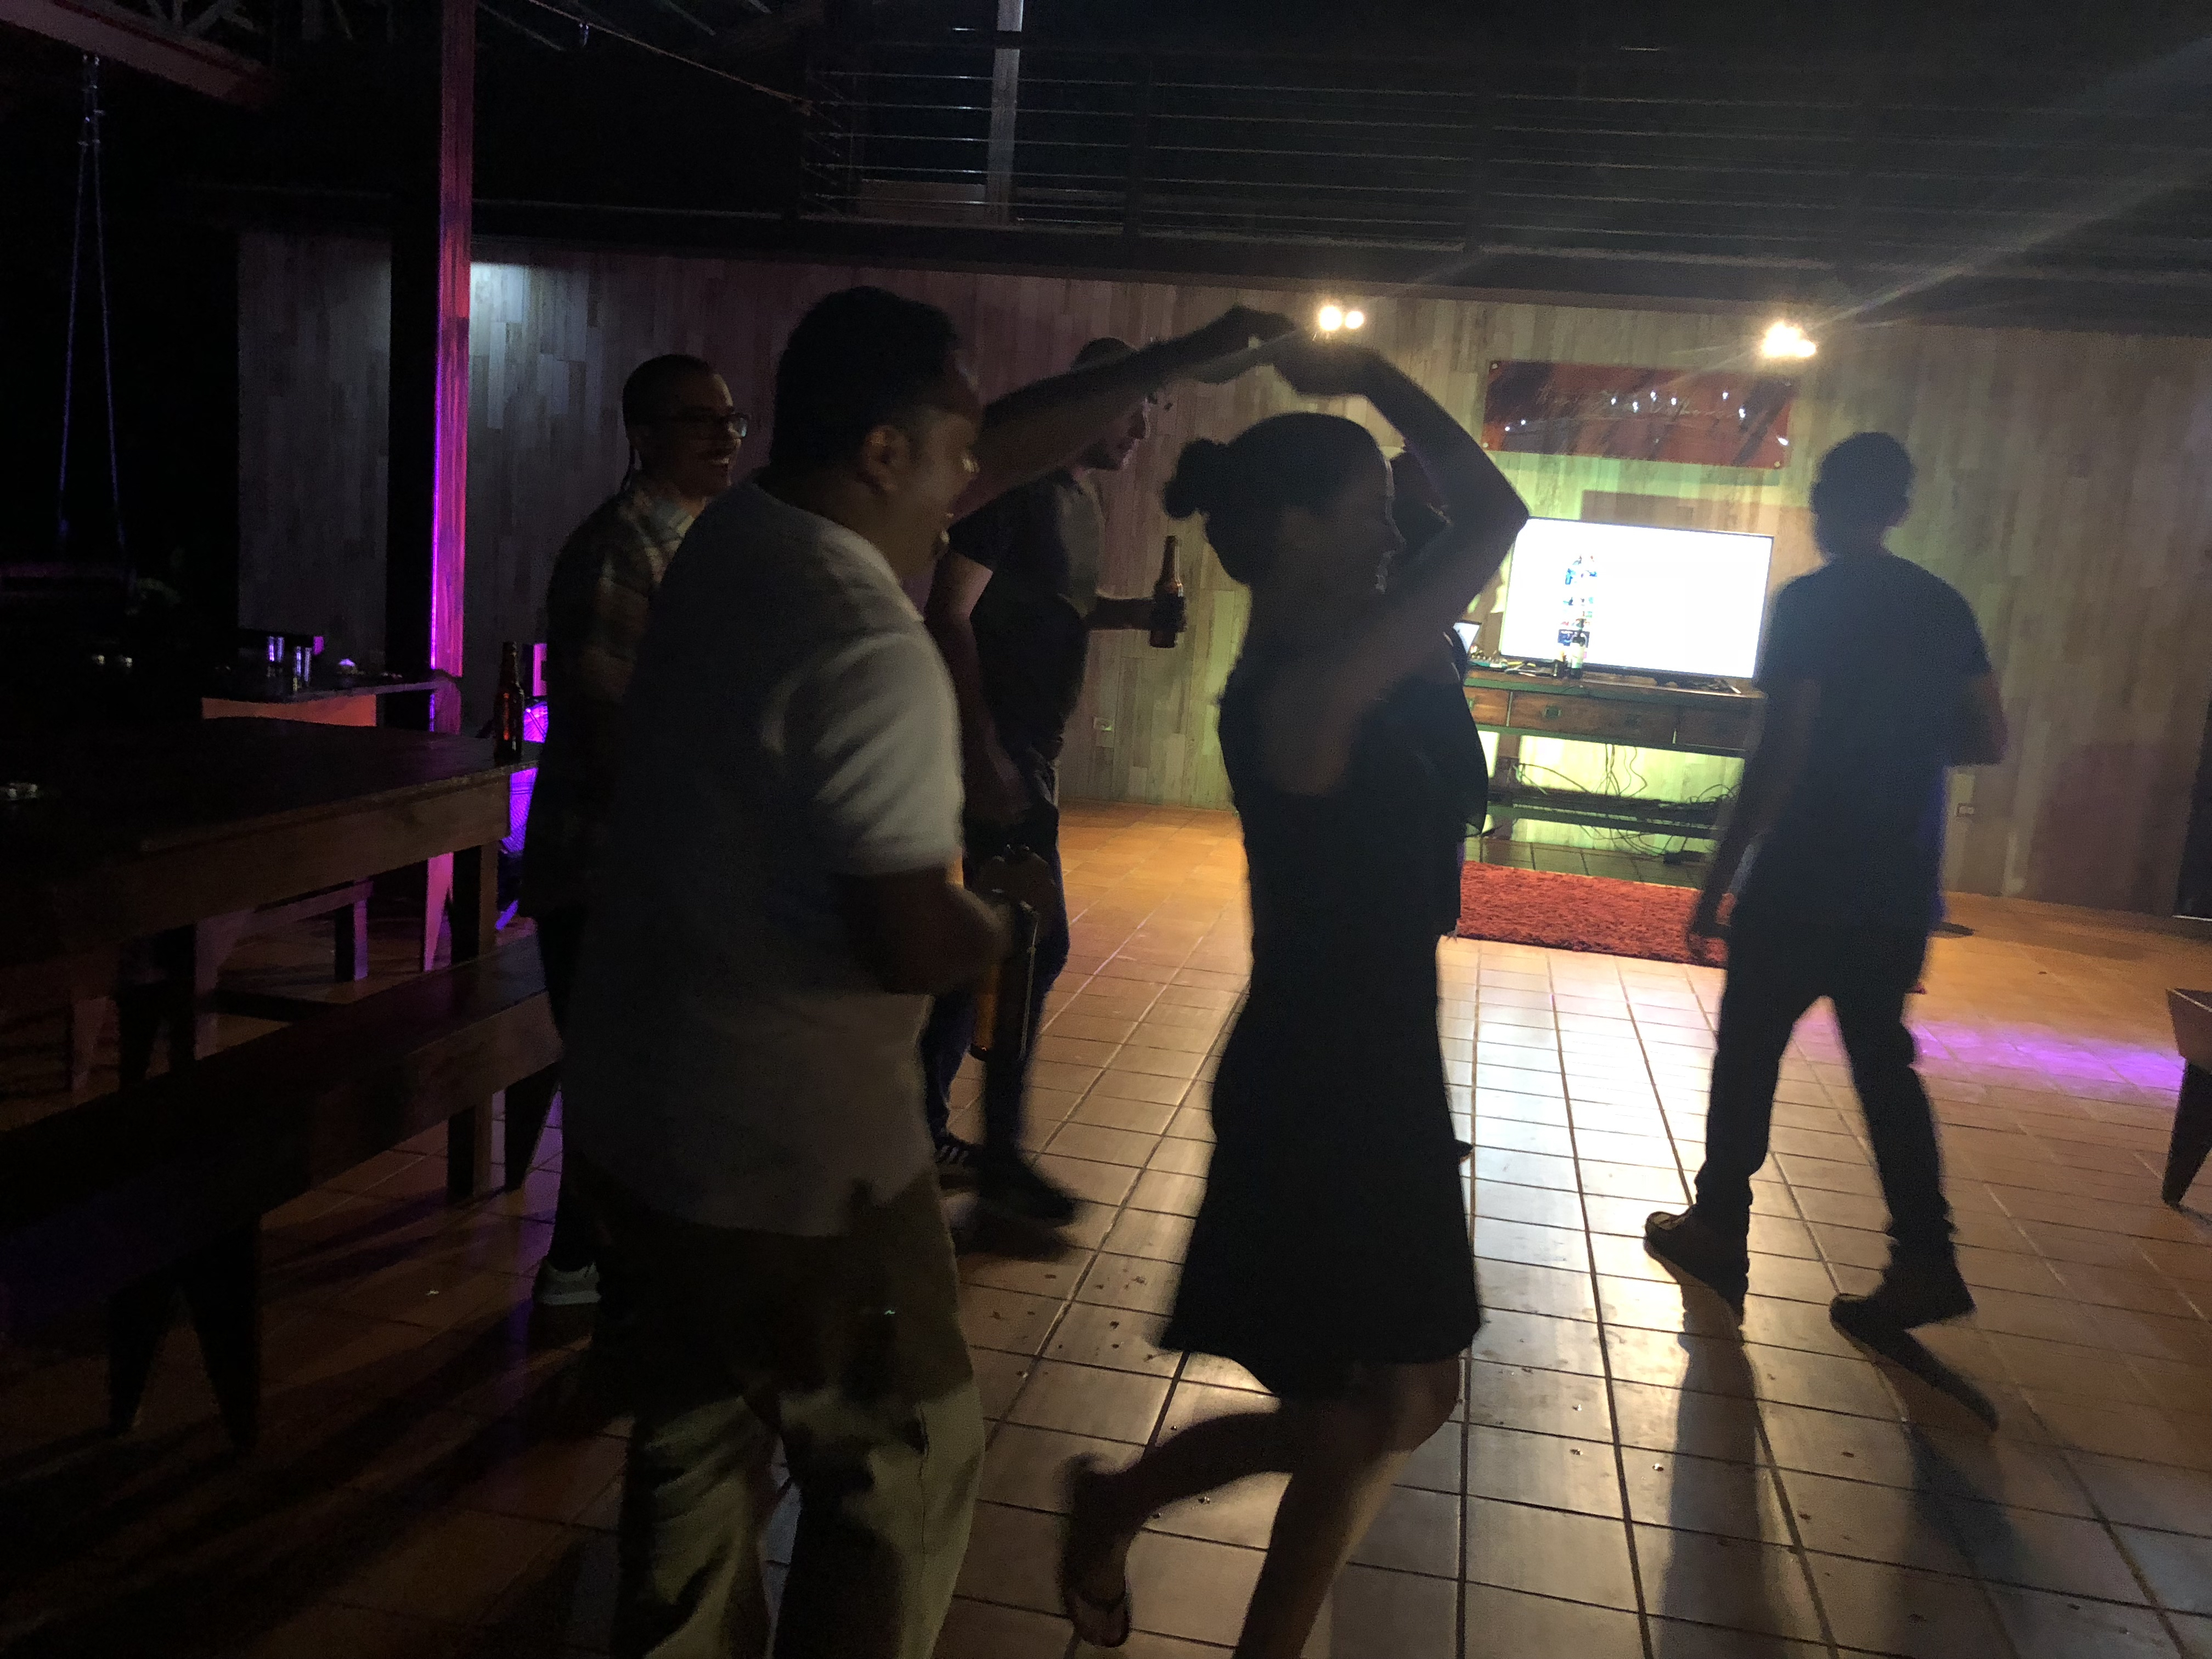 Get your groove on while learn how to salsa dance in Costa Rica.